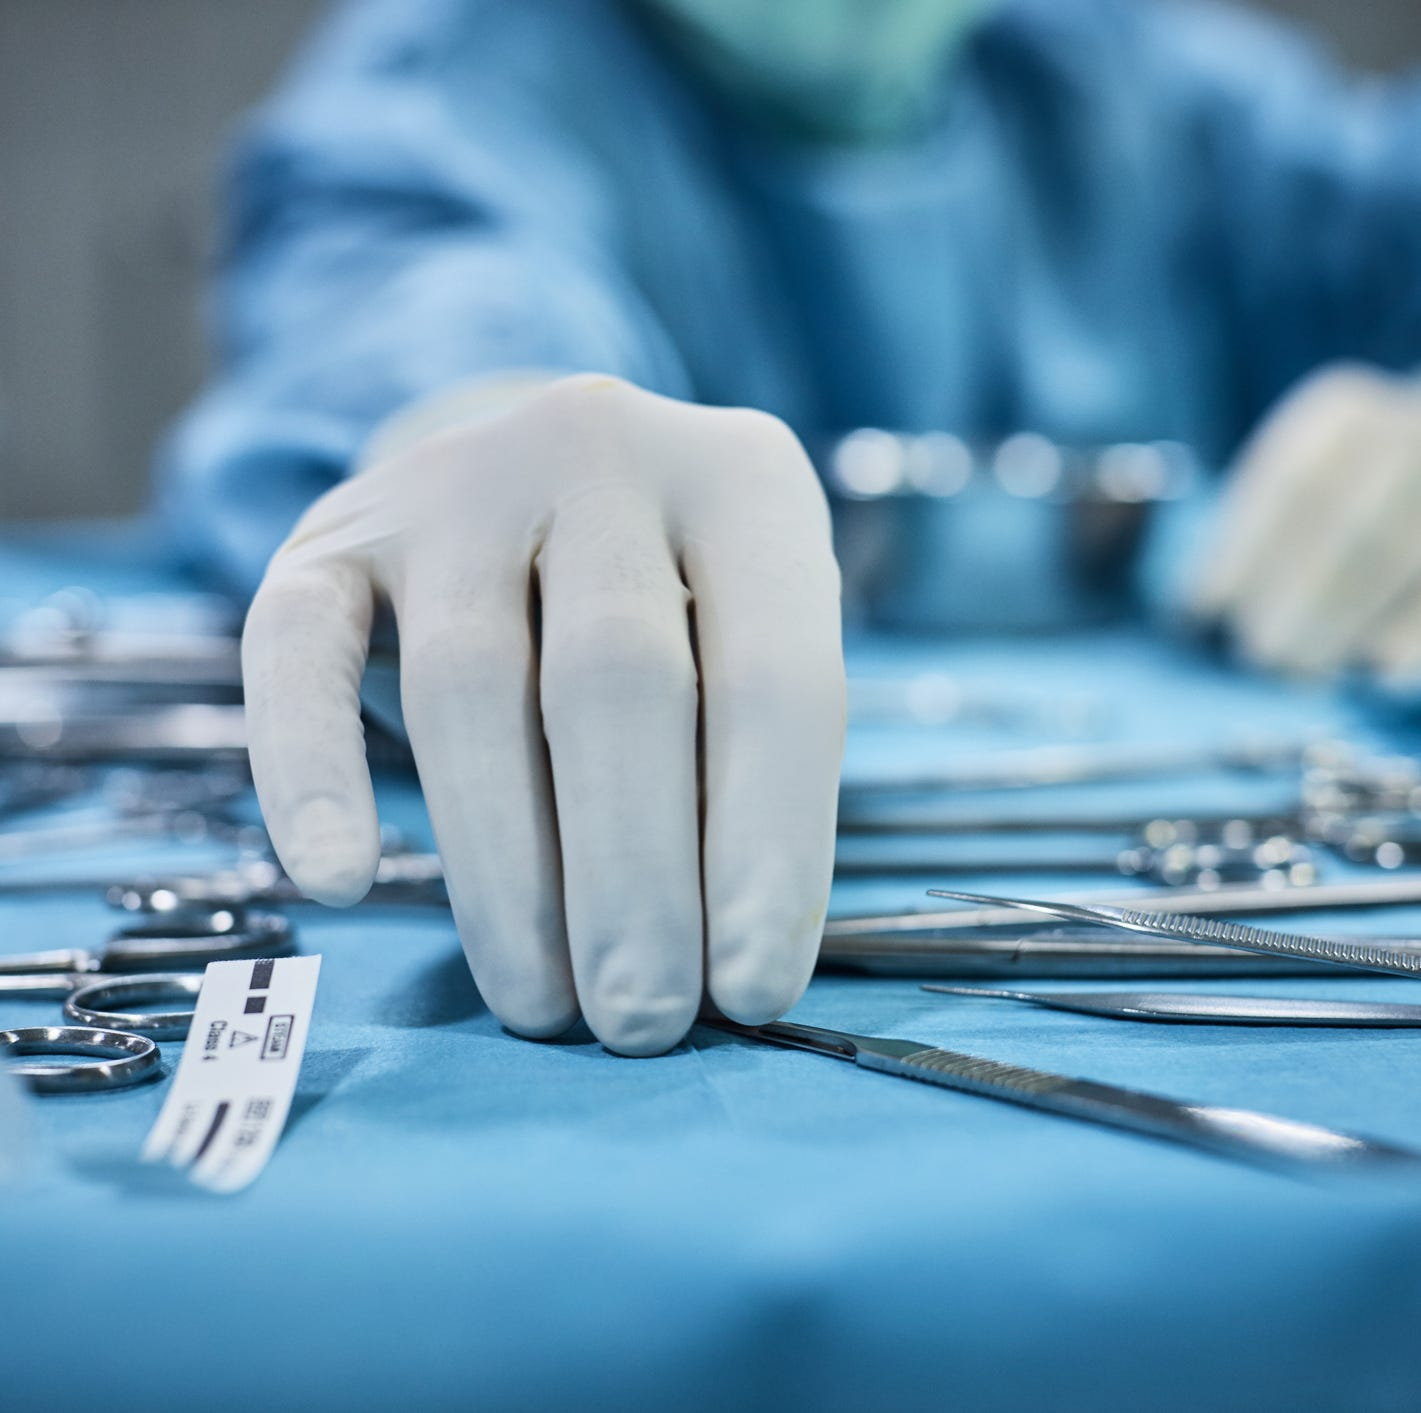 A Florida doctor was sued for malpractice after accidentally removing a healthy organ.